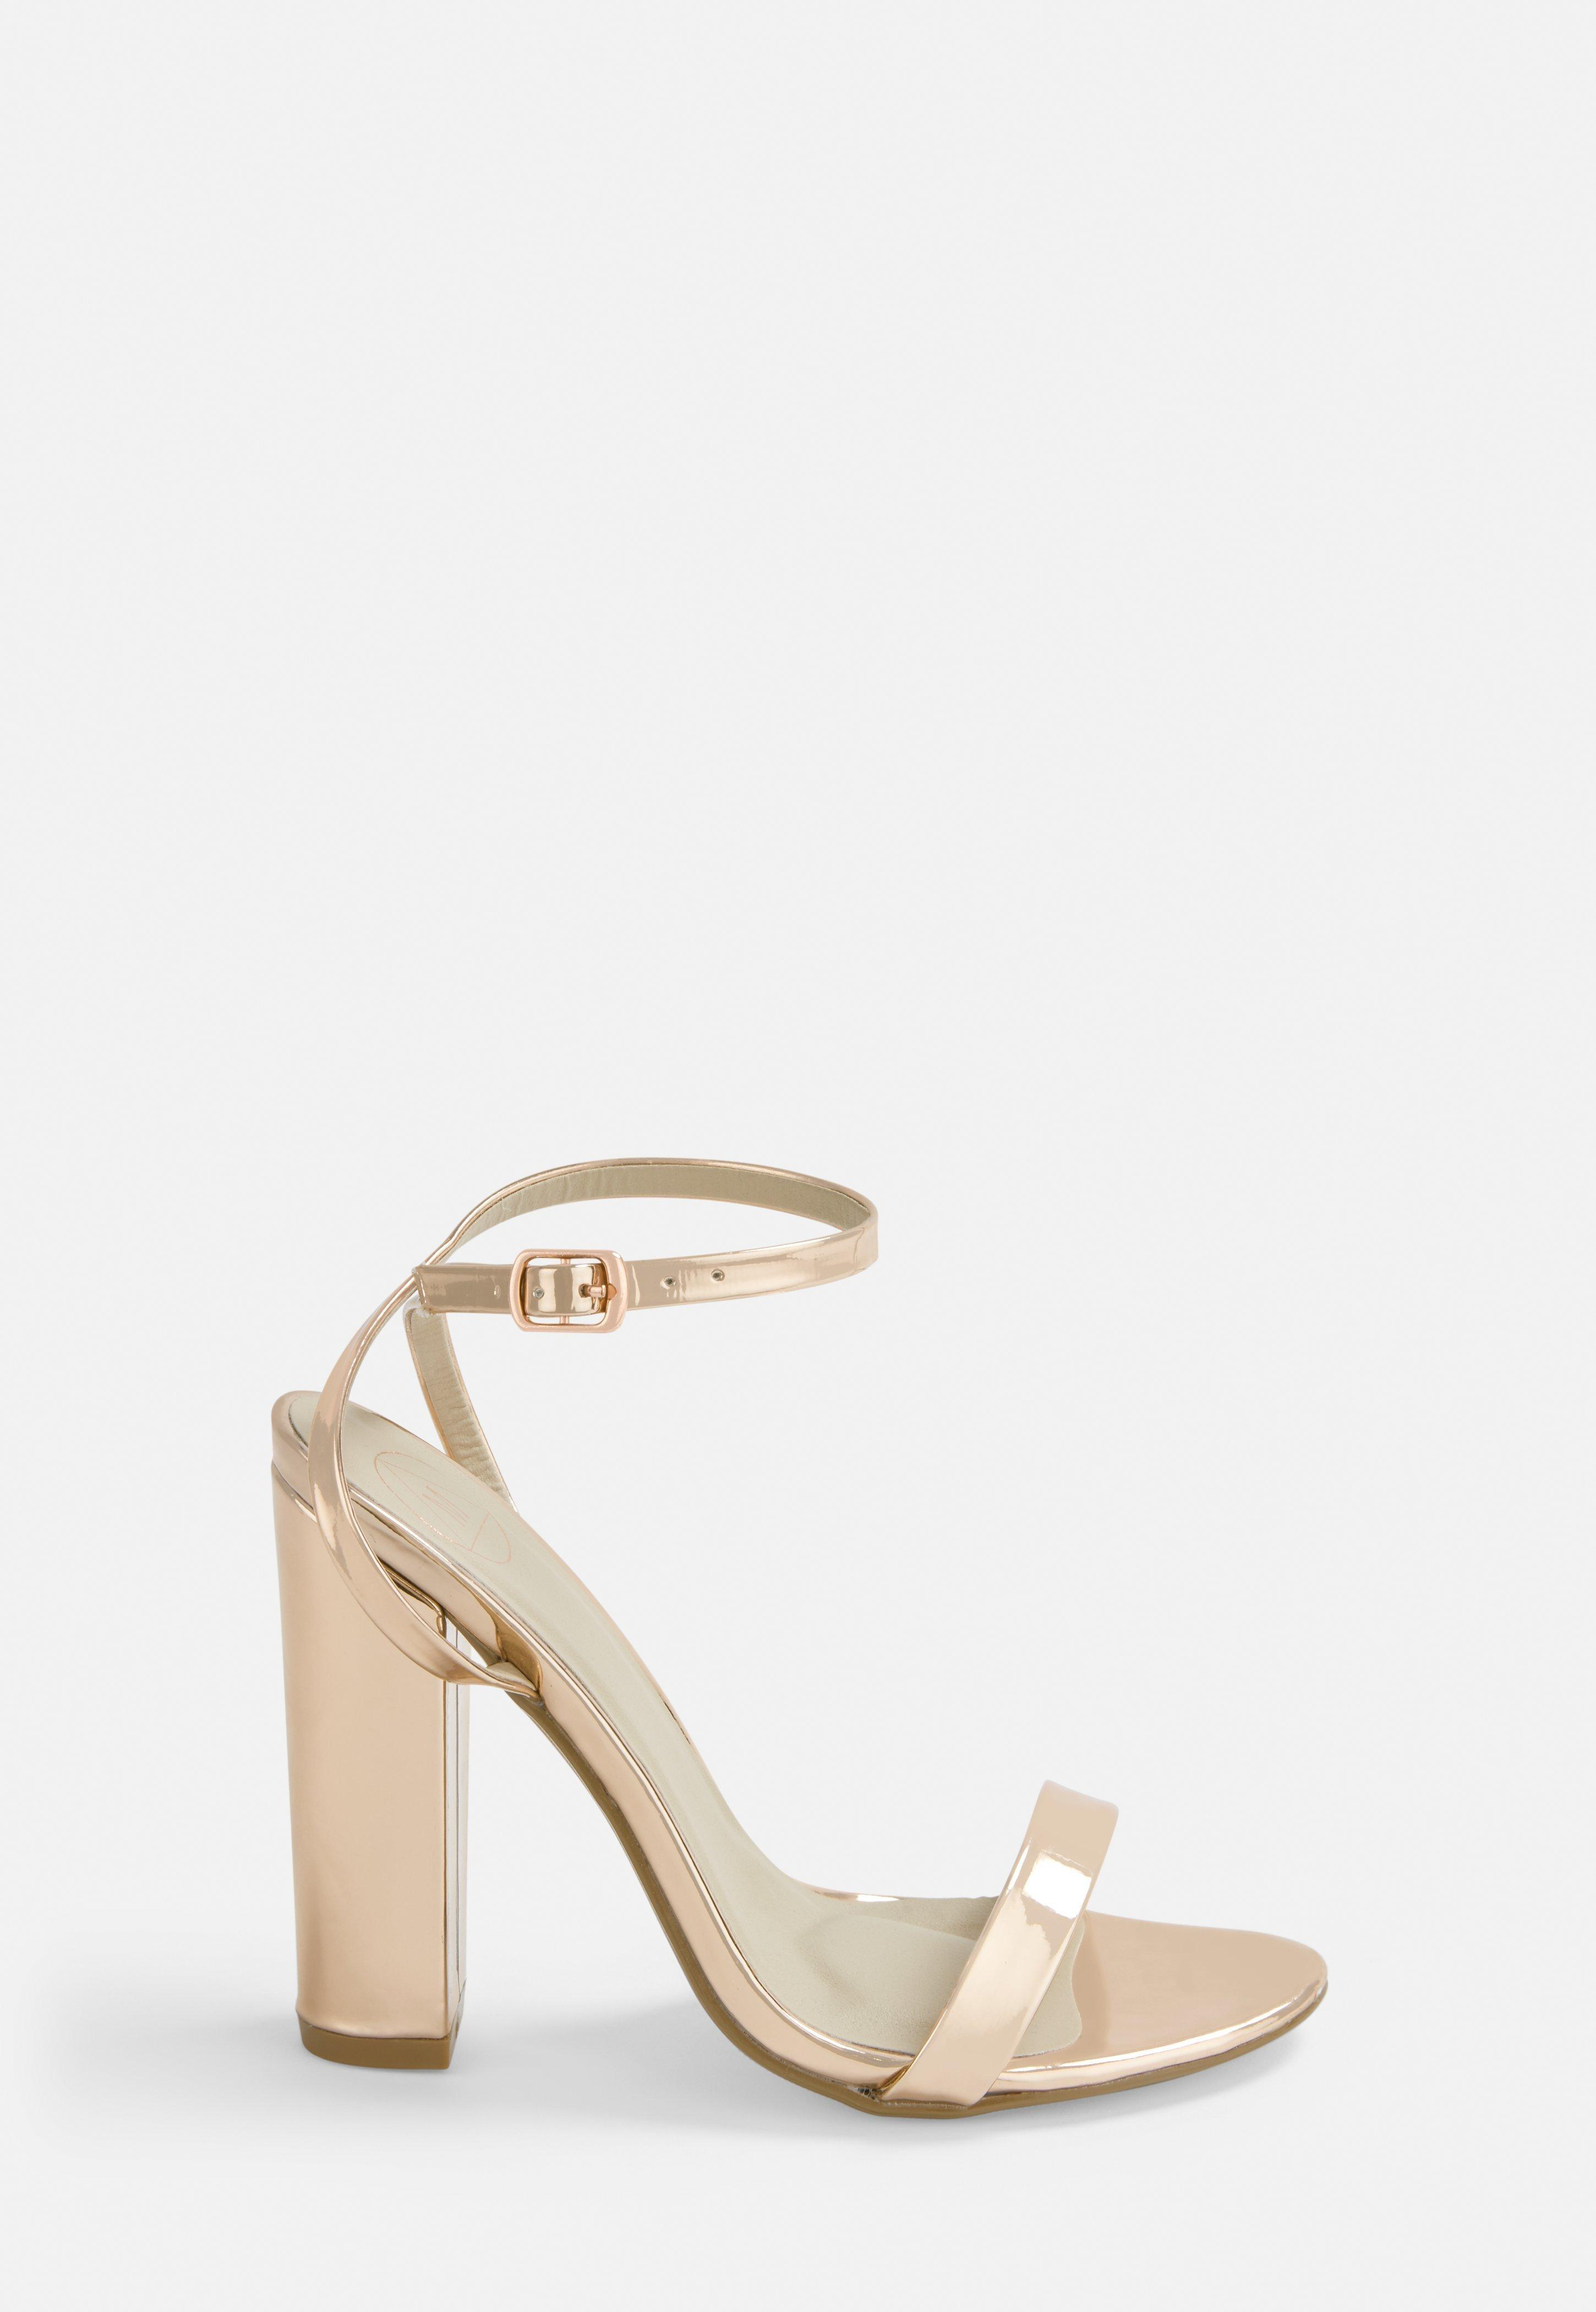 Chaussures Missguided Chaussures Chaussures Habillées Chaussures Habillées Chaussures Missguided Missguided Missguided Habillées Habillées Habillées Missguided Chaussures QCerExBWdo